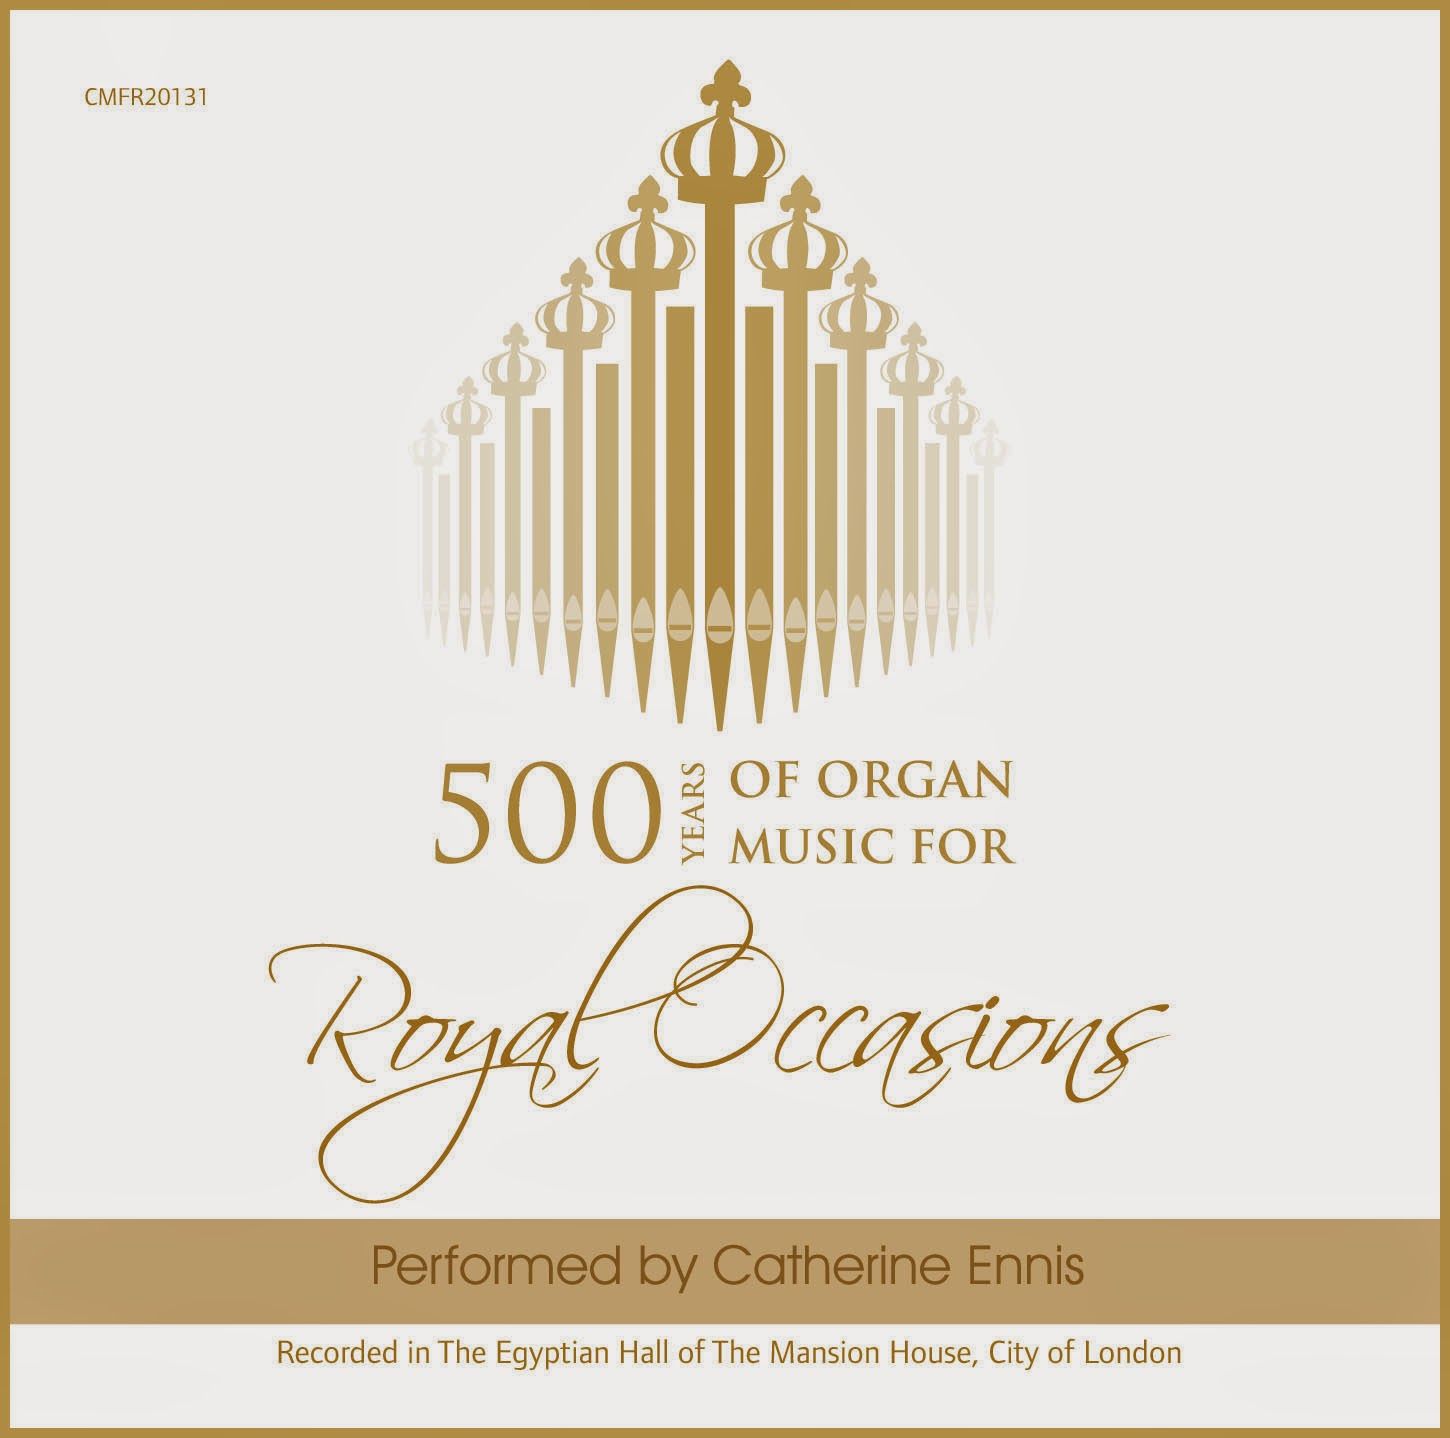 500 years of organ music for Royal occasions